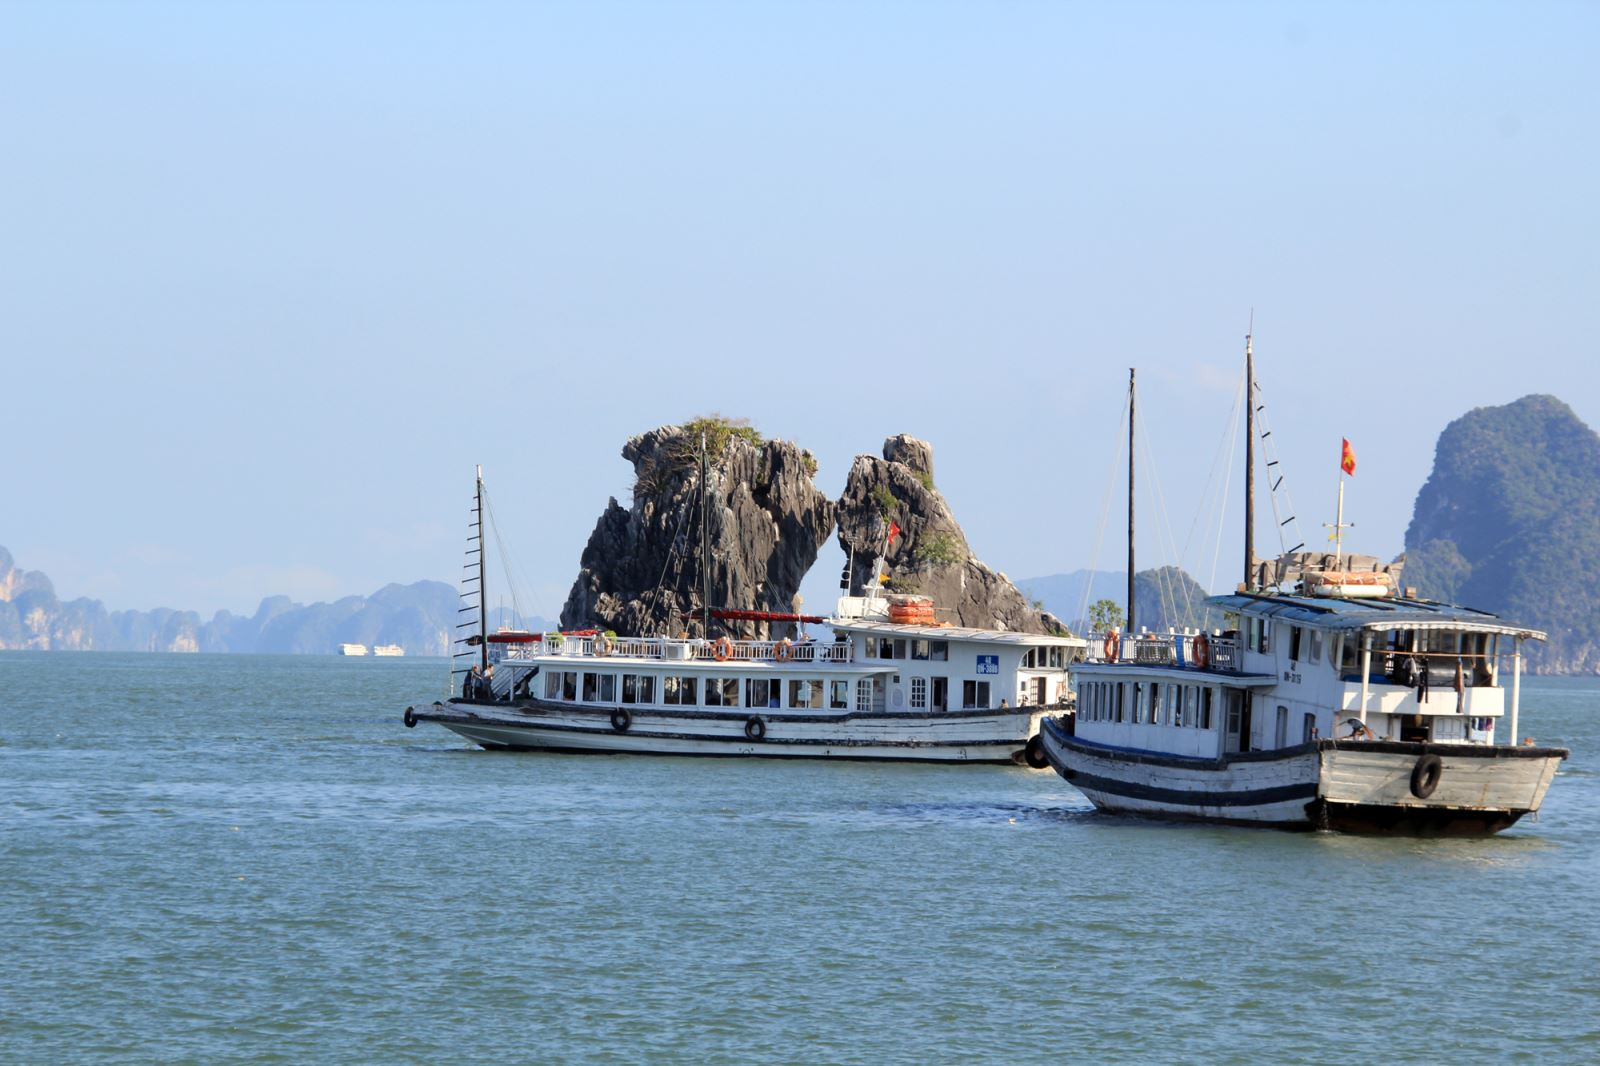 halong kissing chicken rock.jpg